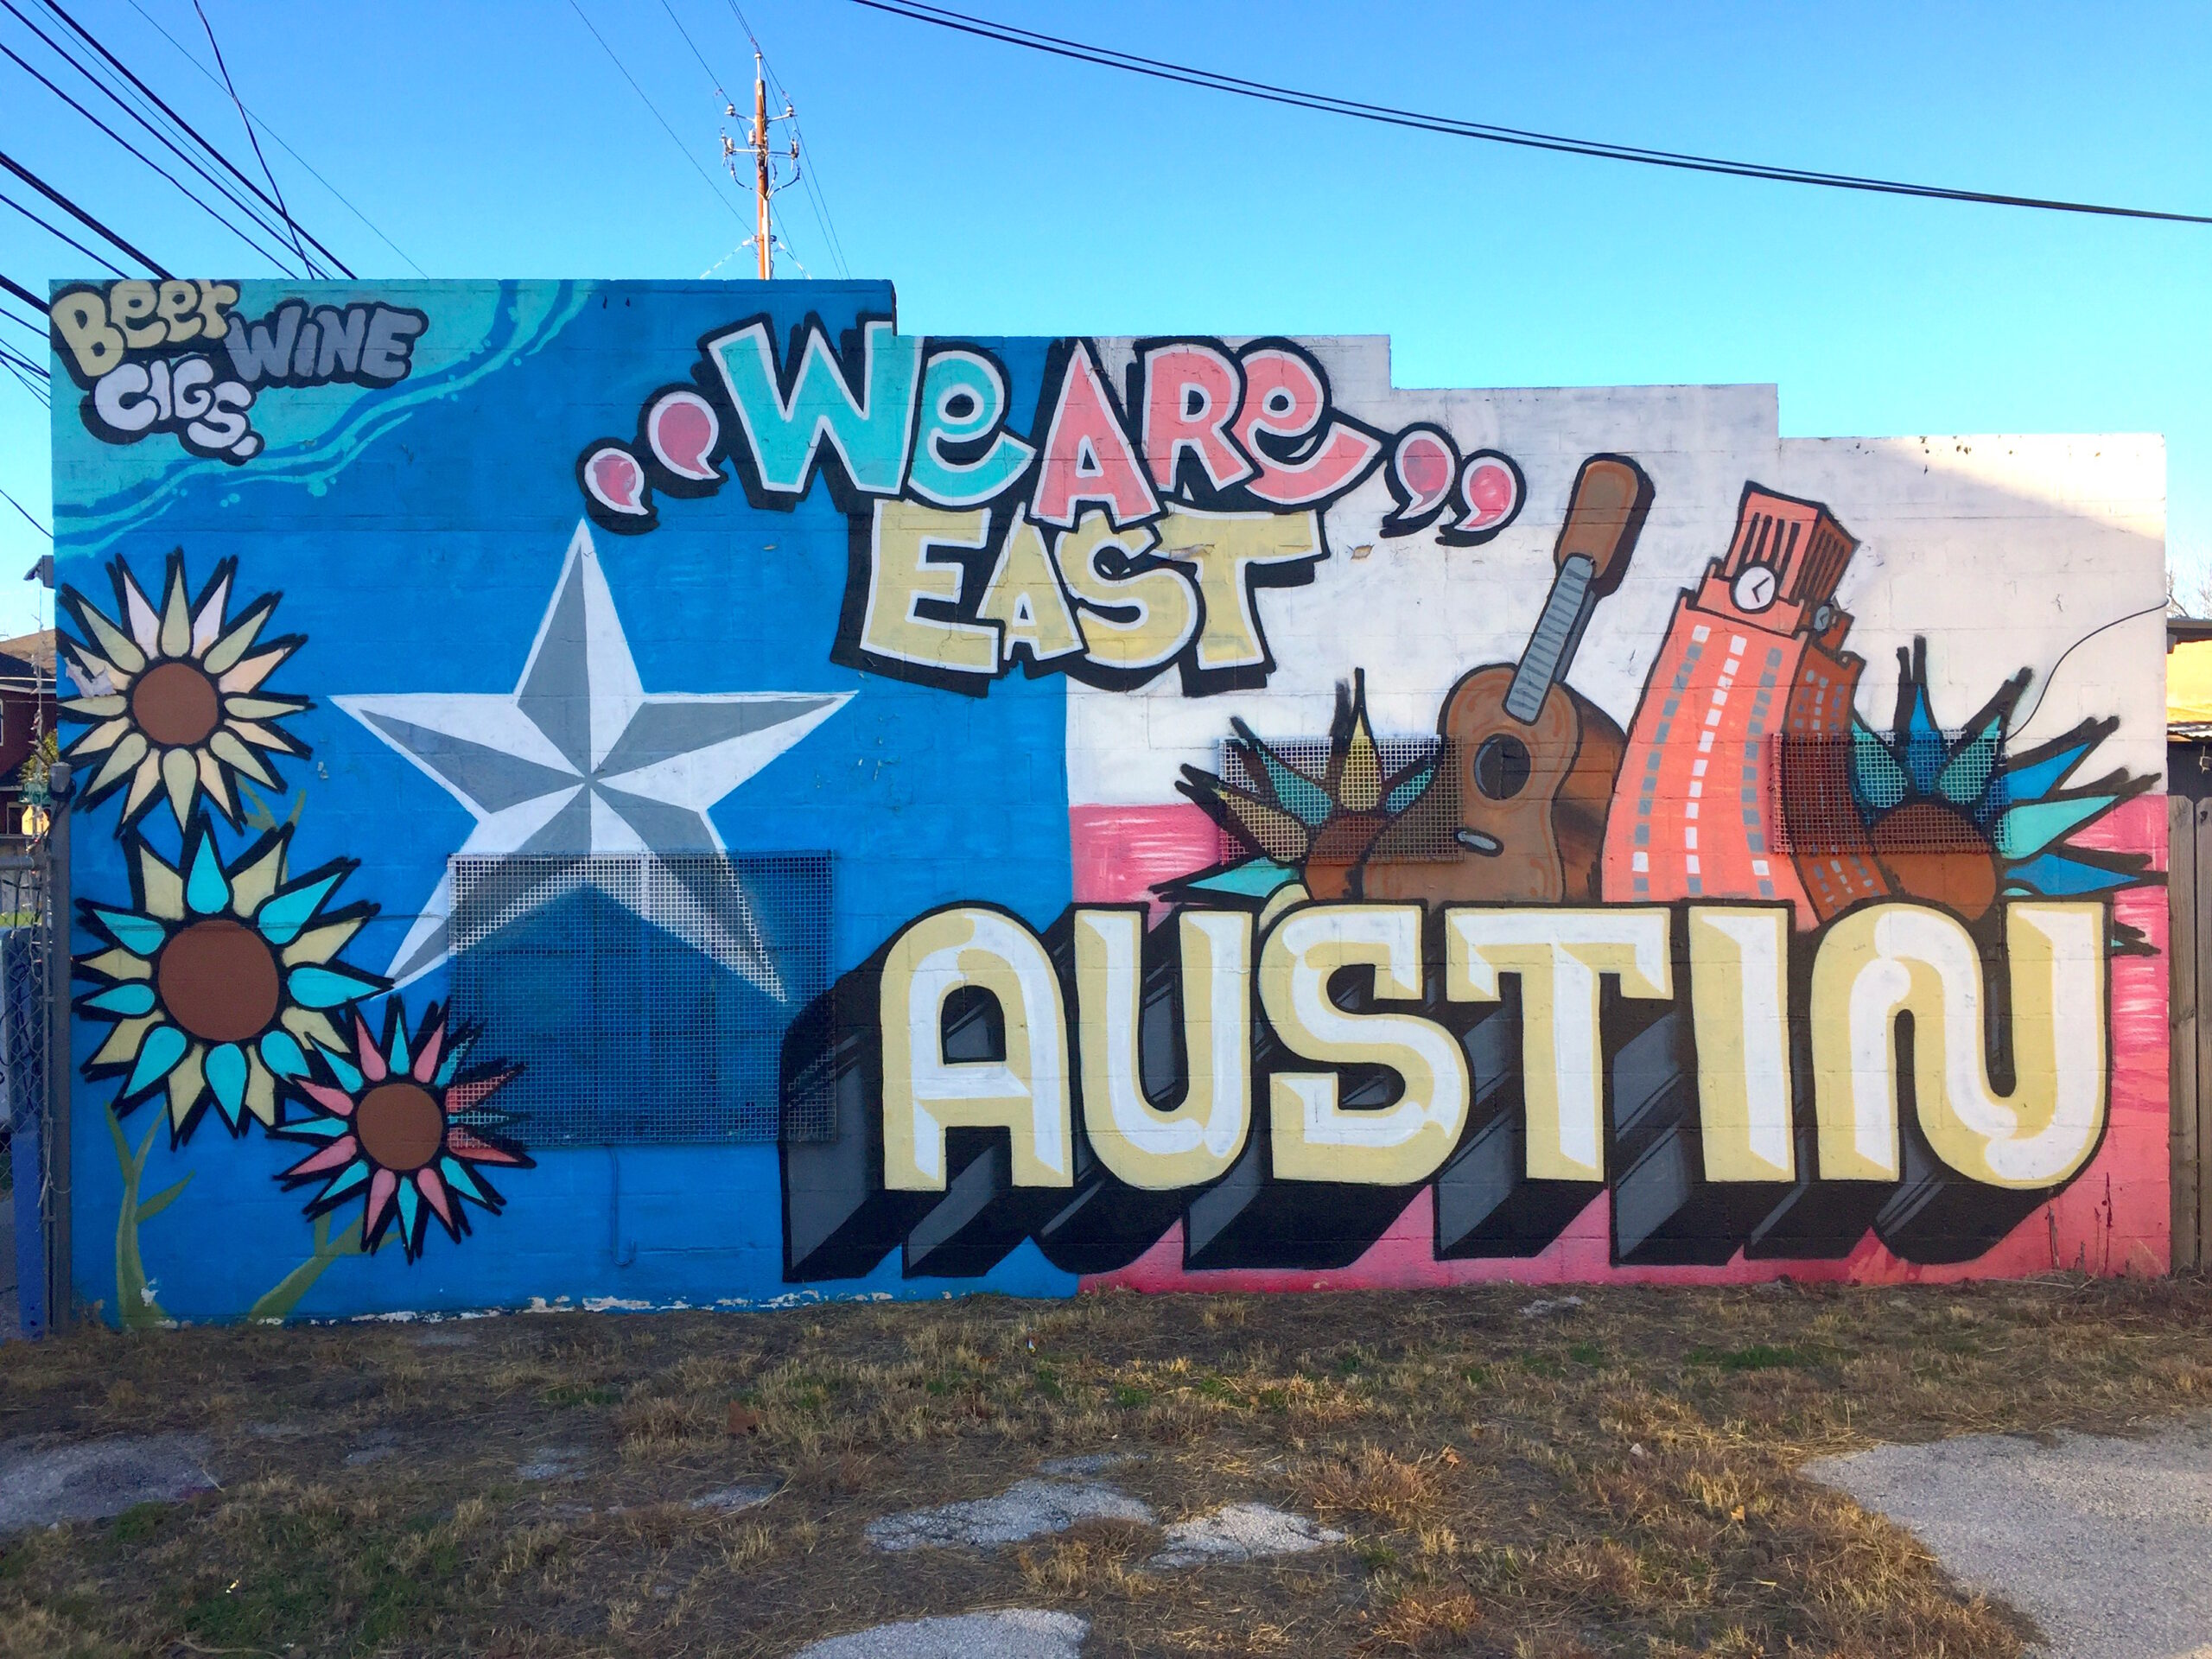 1215 Chicon St. & Everything You Donu0027t Know About the Best Murals in Austin